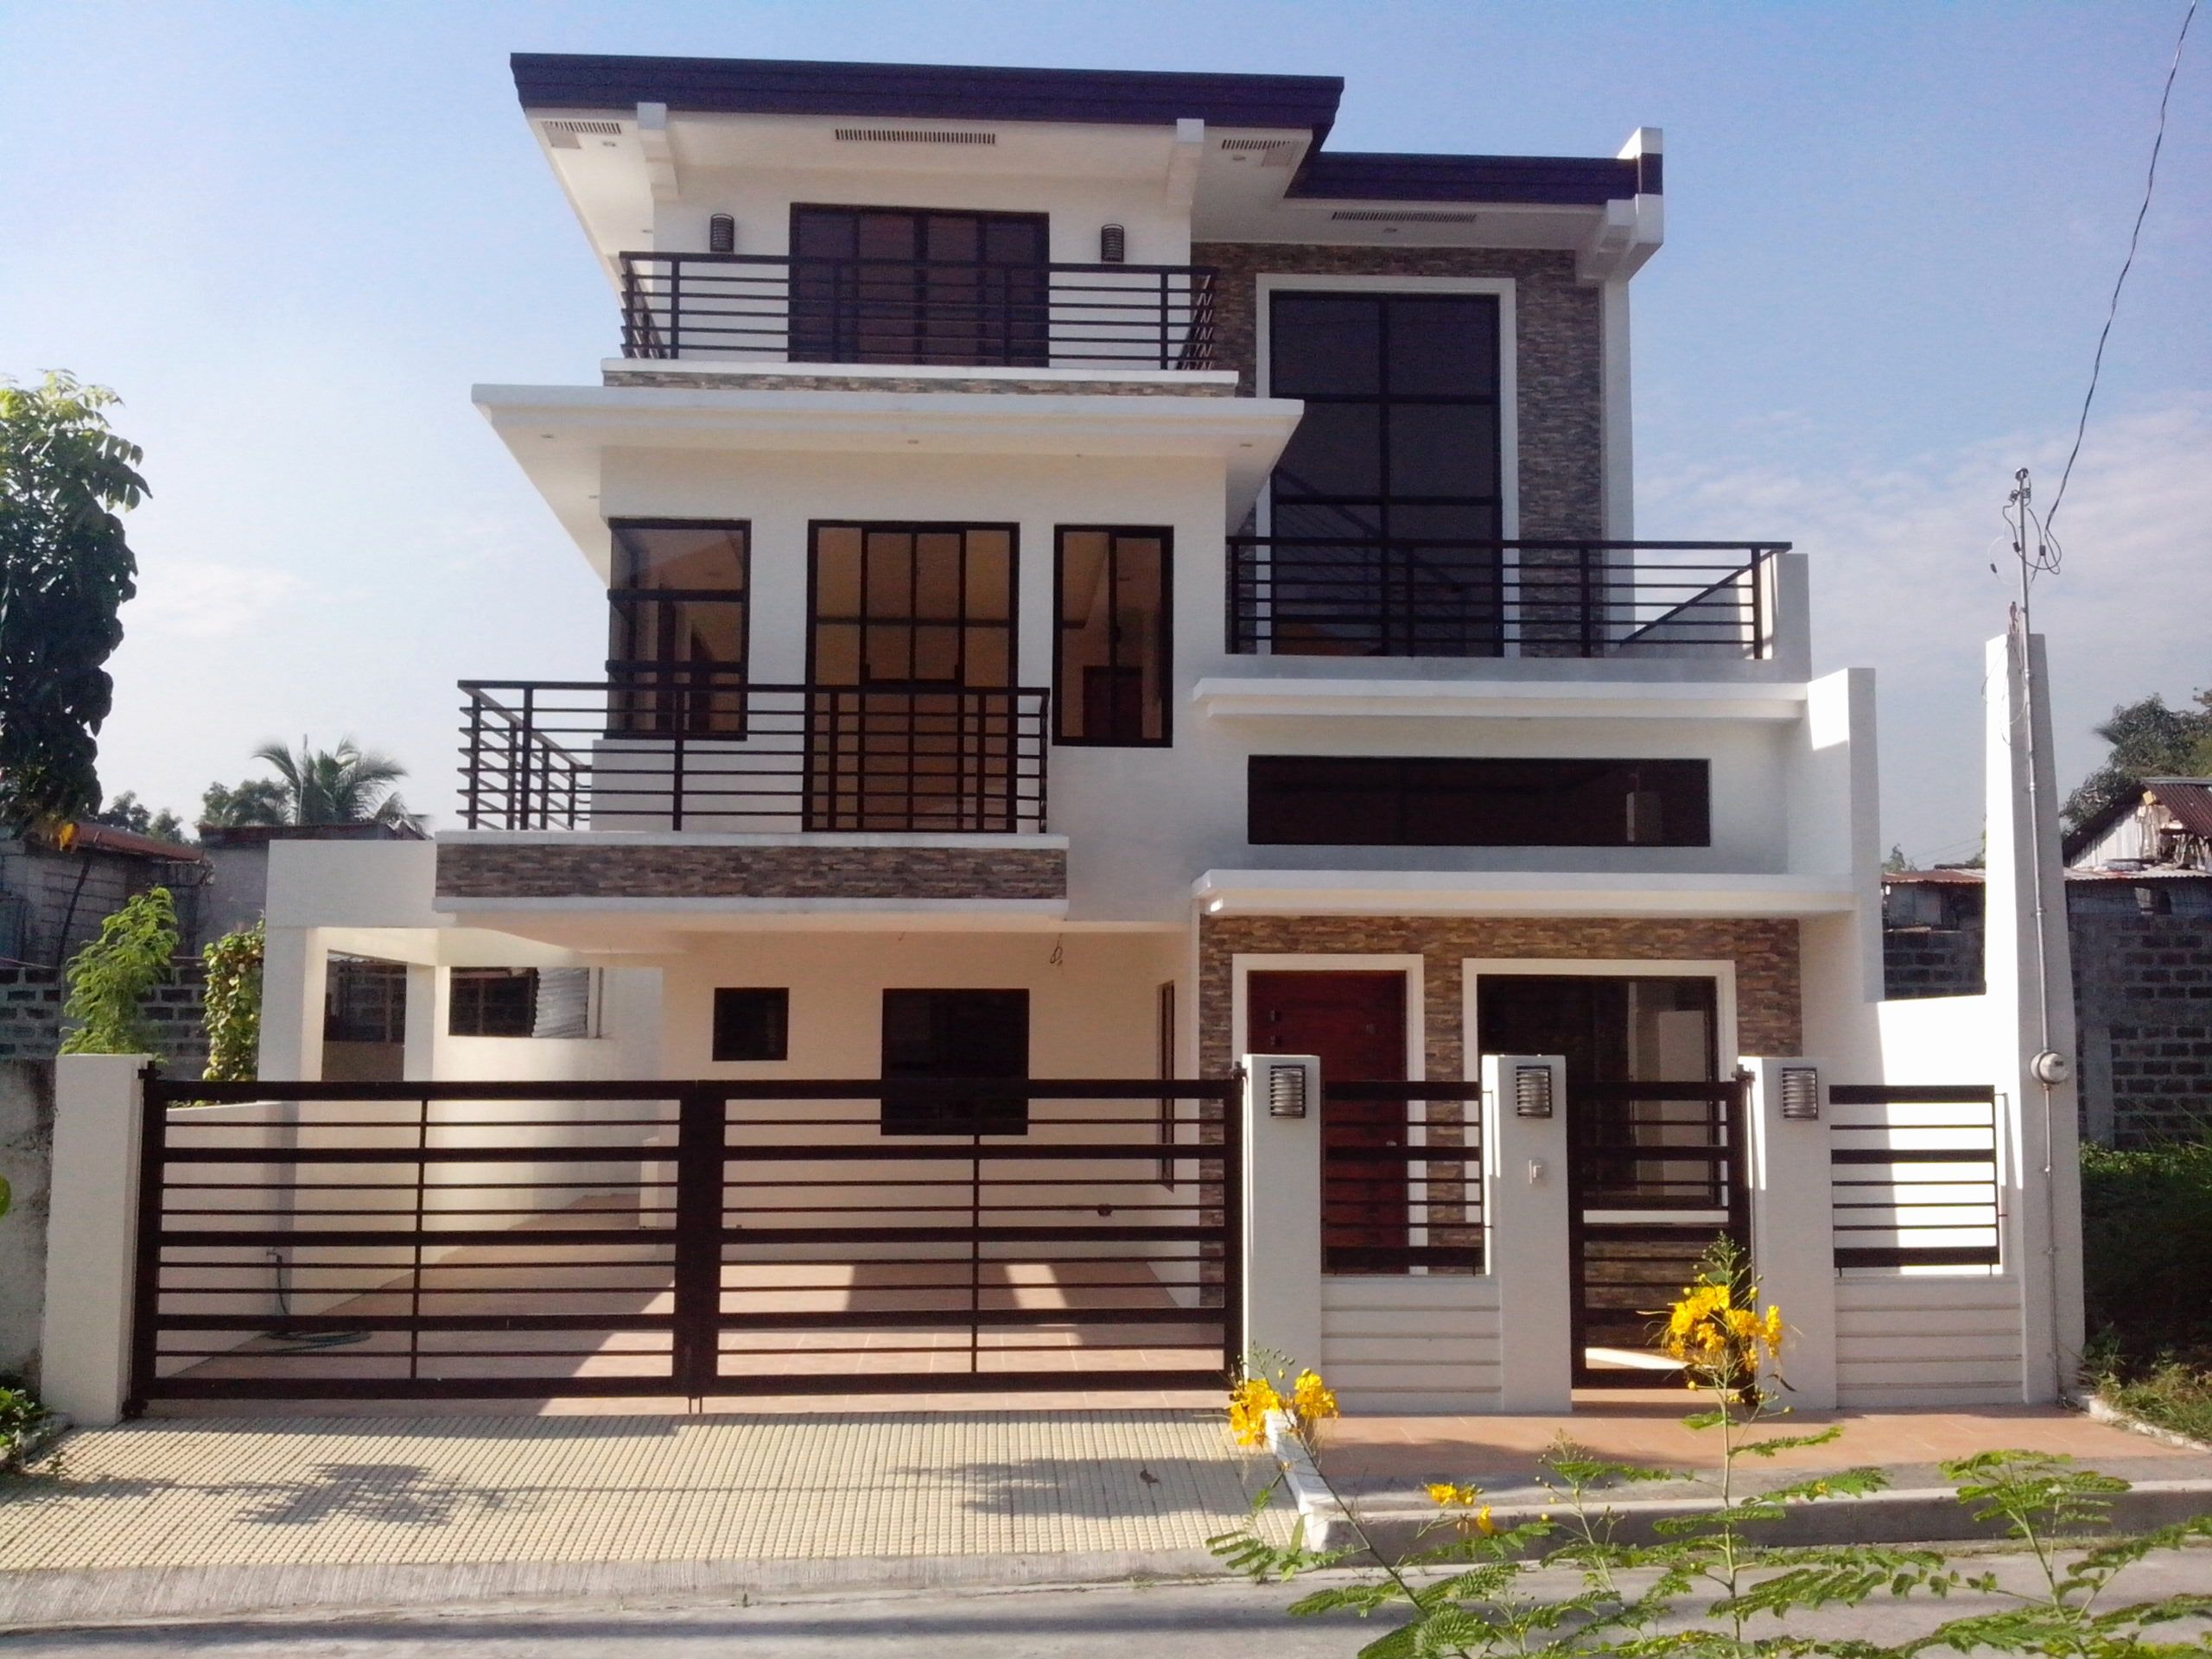 Duplex Apartment Design Philippines Philippines House Design